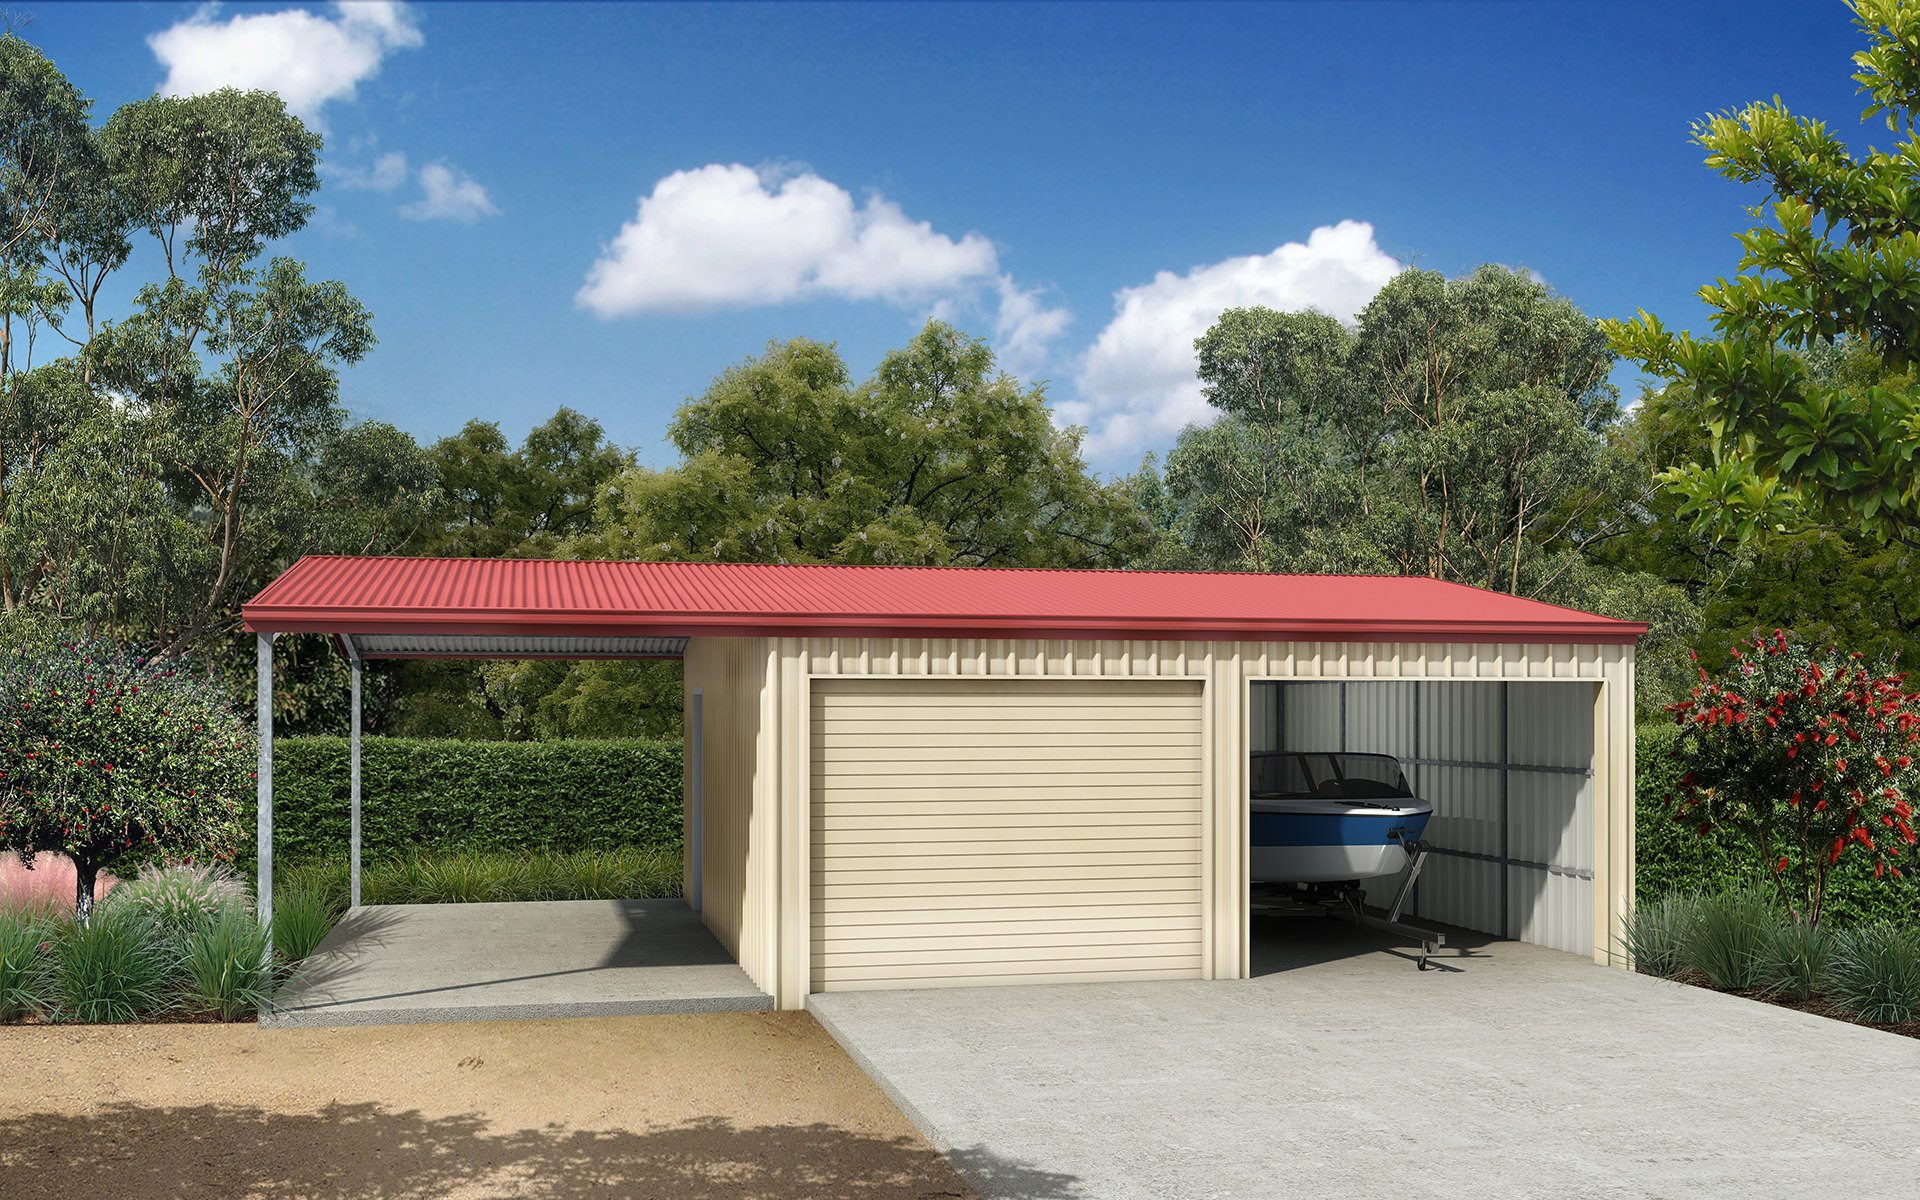 Garaports sheds and garages ranbuild double garage with roof extension solutioingenieria Gallery